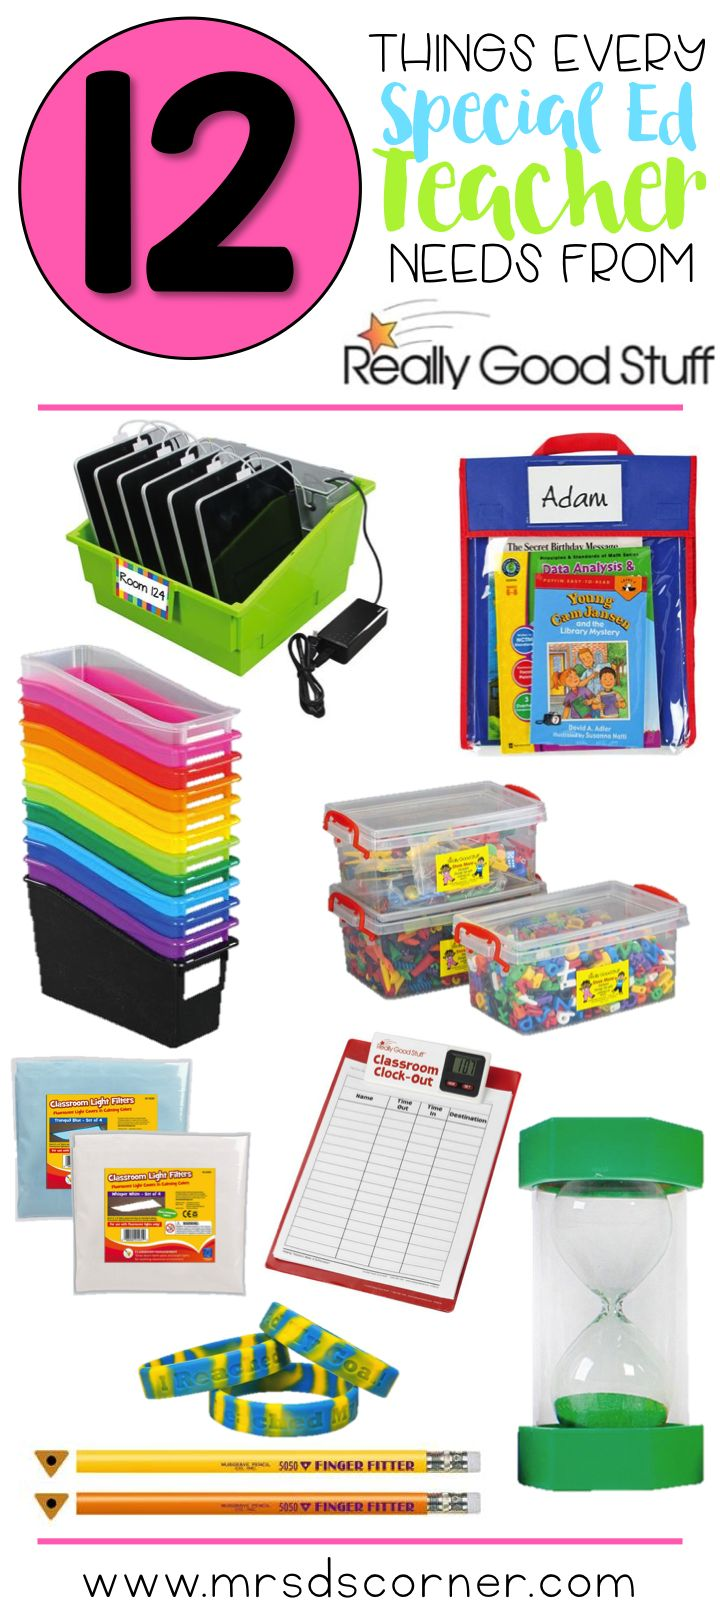 Back to school time is crazy, even for veteran teachers.  Here are 12 Things Every Special Education Teacher Needs for back to school. Read the Blog Post at Mrs D's Corner.